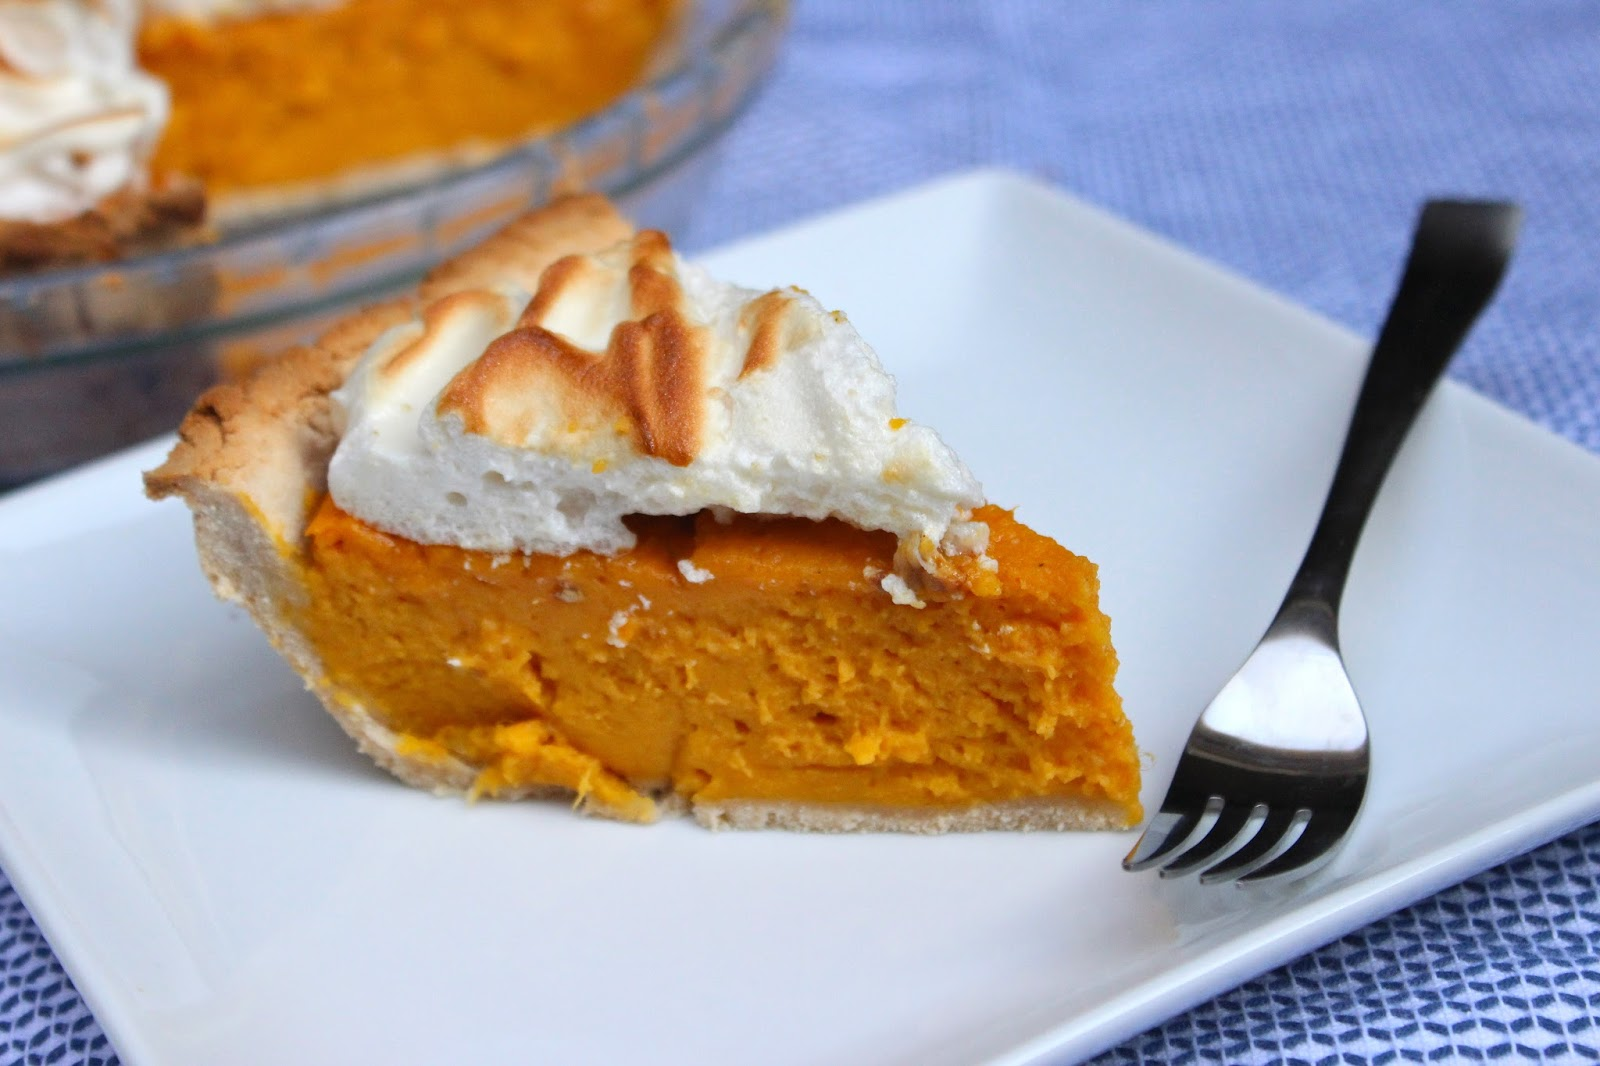 CupcakesOMG!: Paleo Sweet Potato Meringue Pie